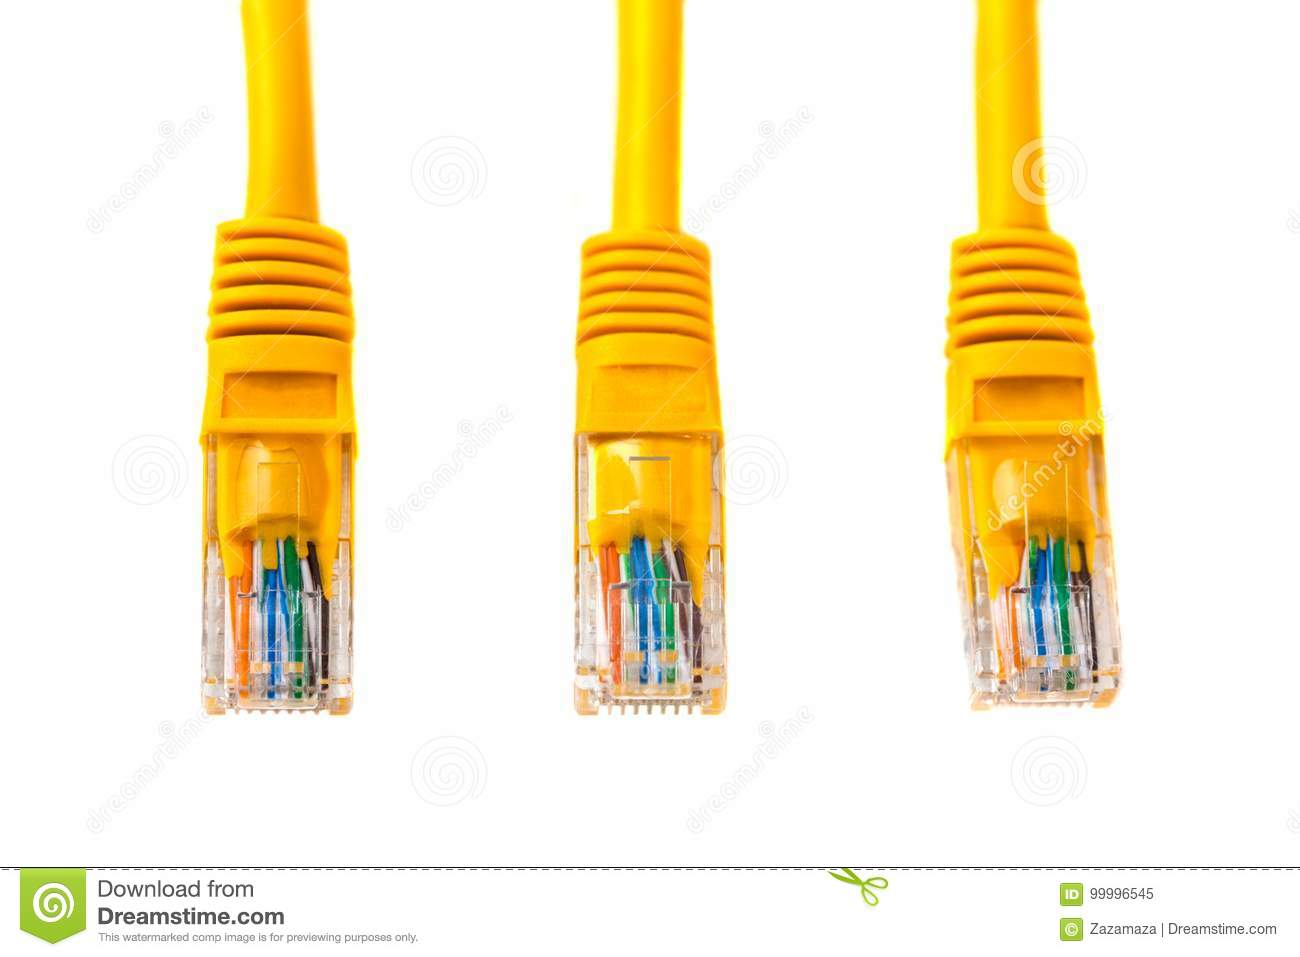 Surprising Three Cable Heads Into Head Rj45 Of An Ethernet Wire Cable Or Yellow Gufa Illuminateatx Wiring Cloud Gufailluminateatxorg